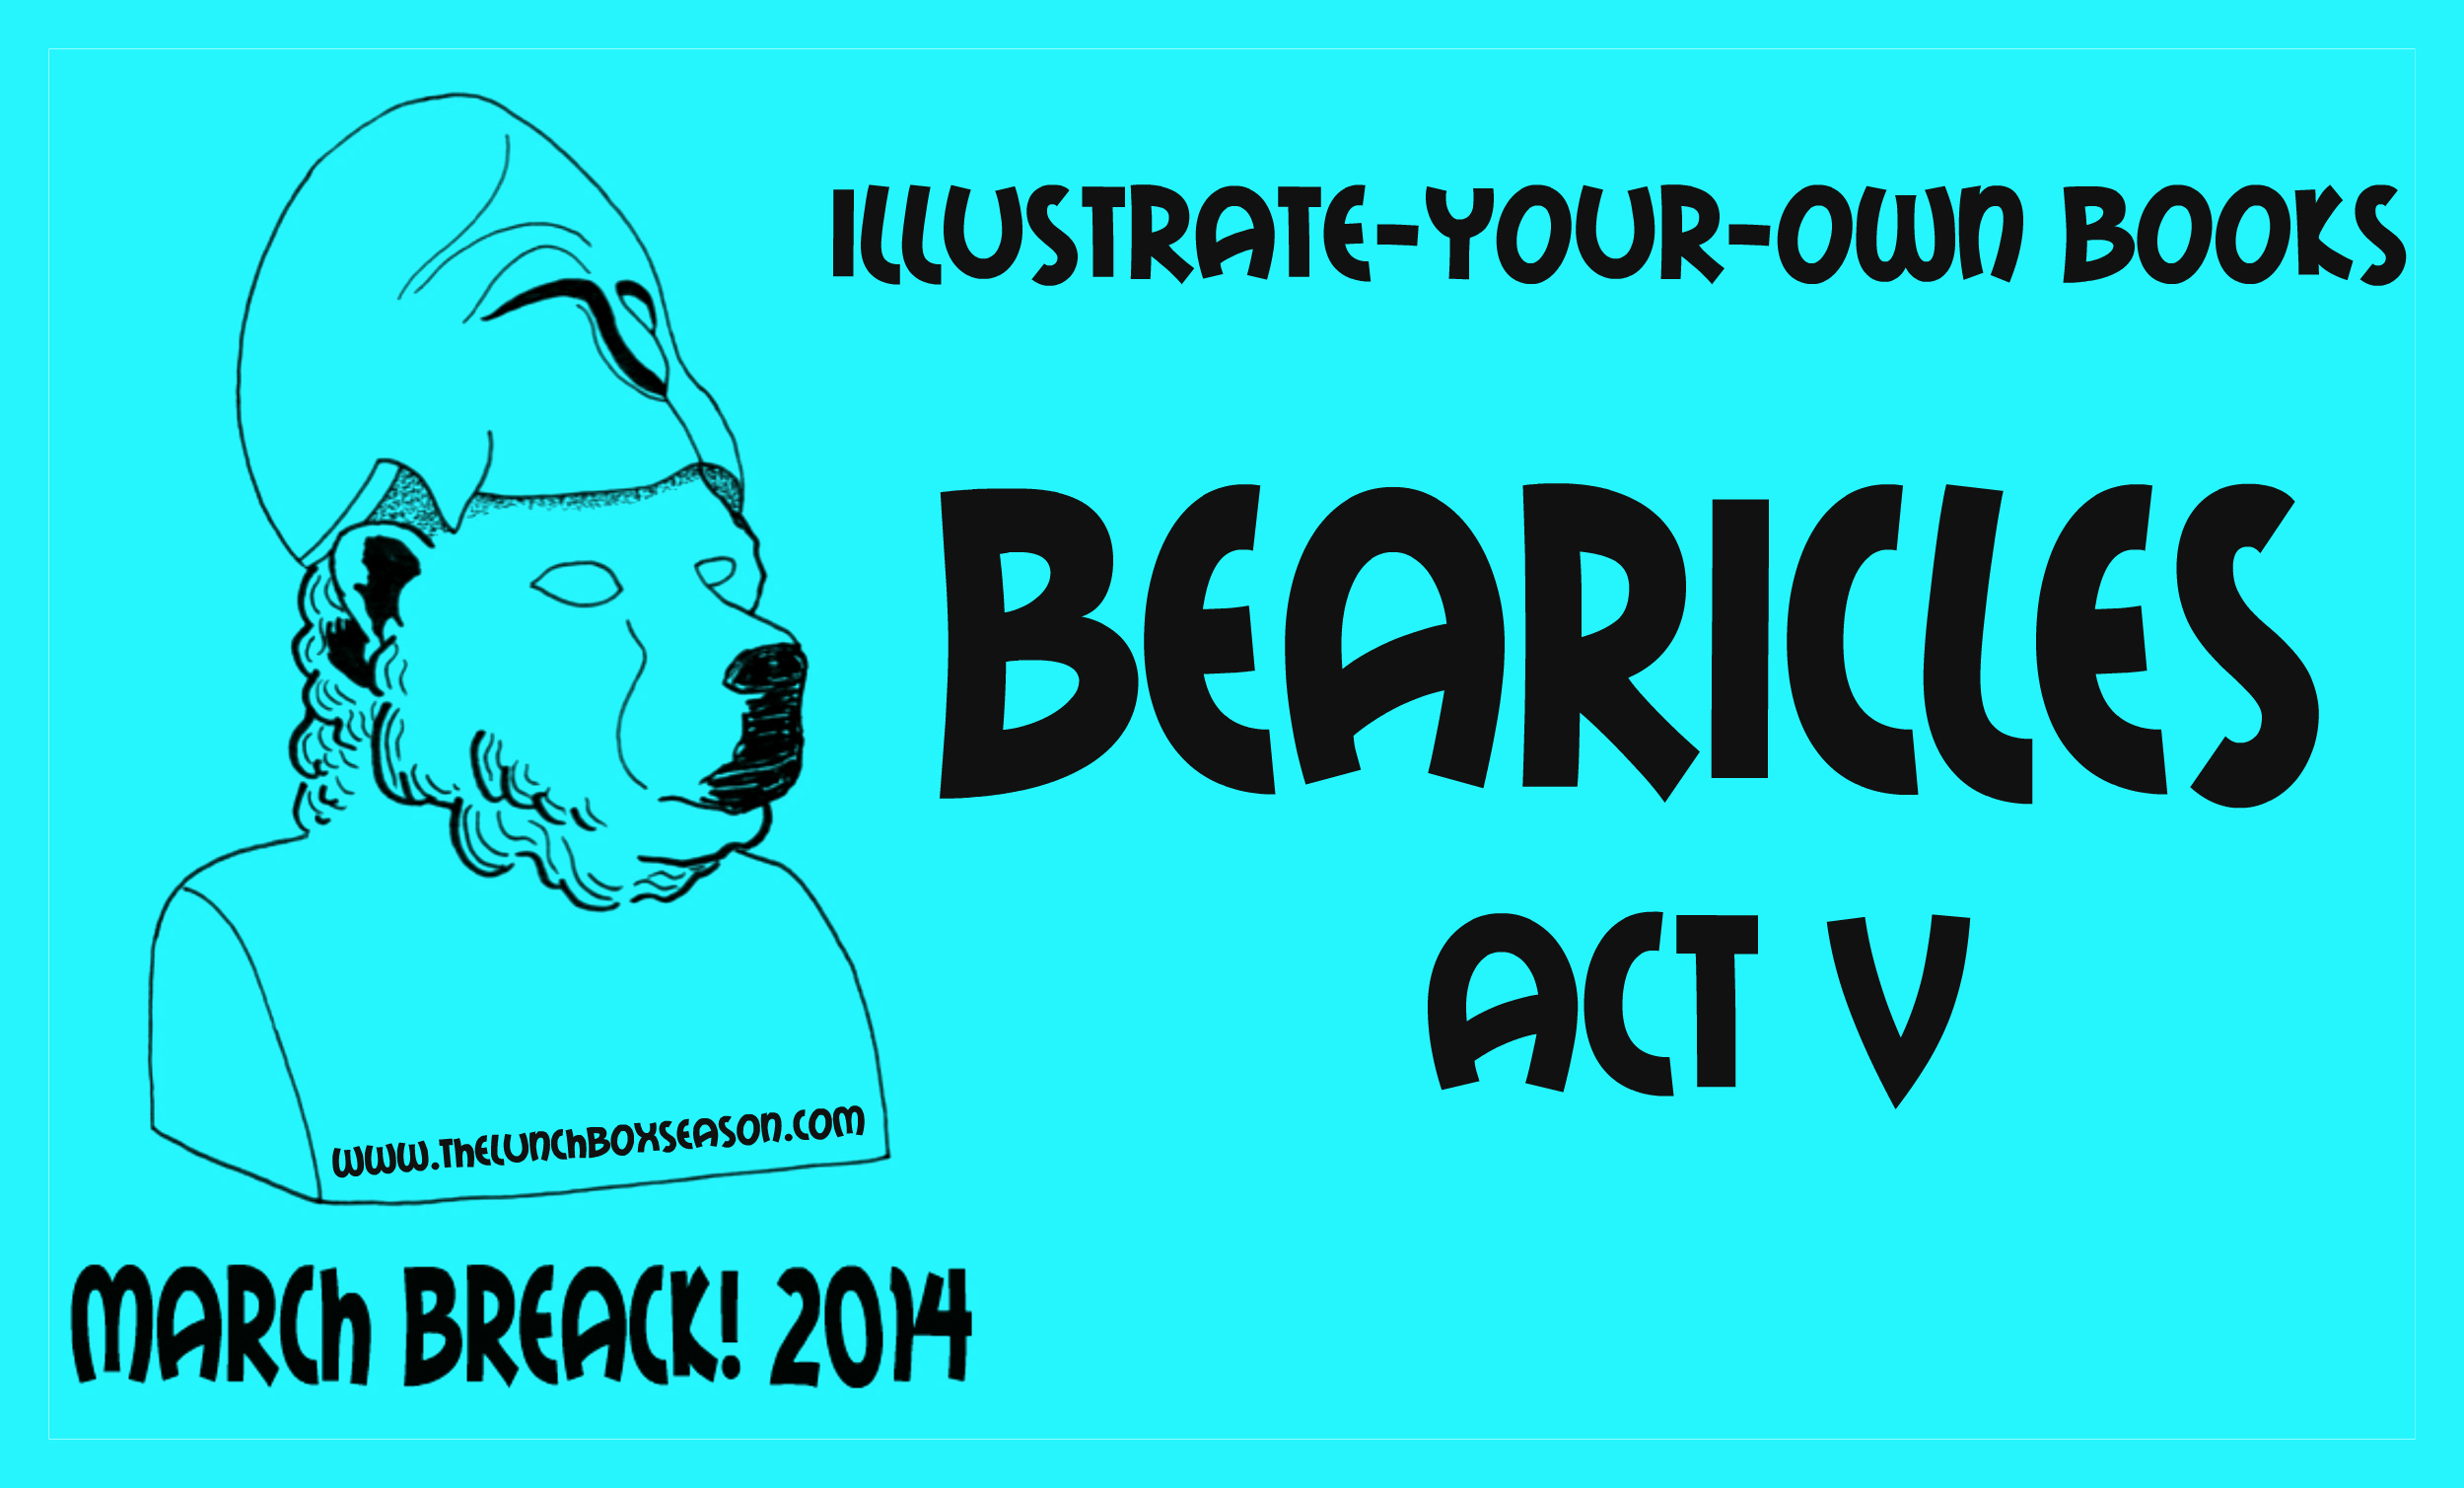 Illustrate your own books bearicles act v